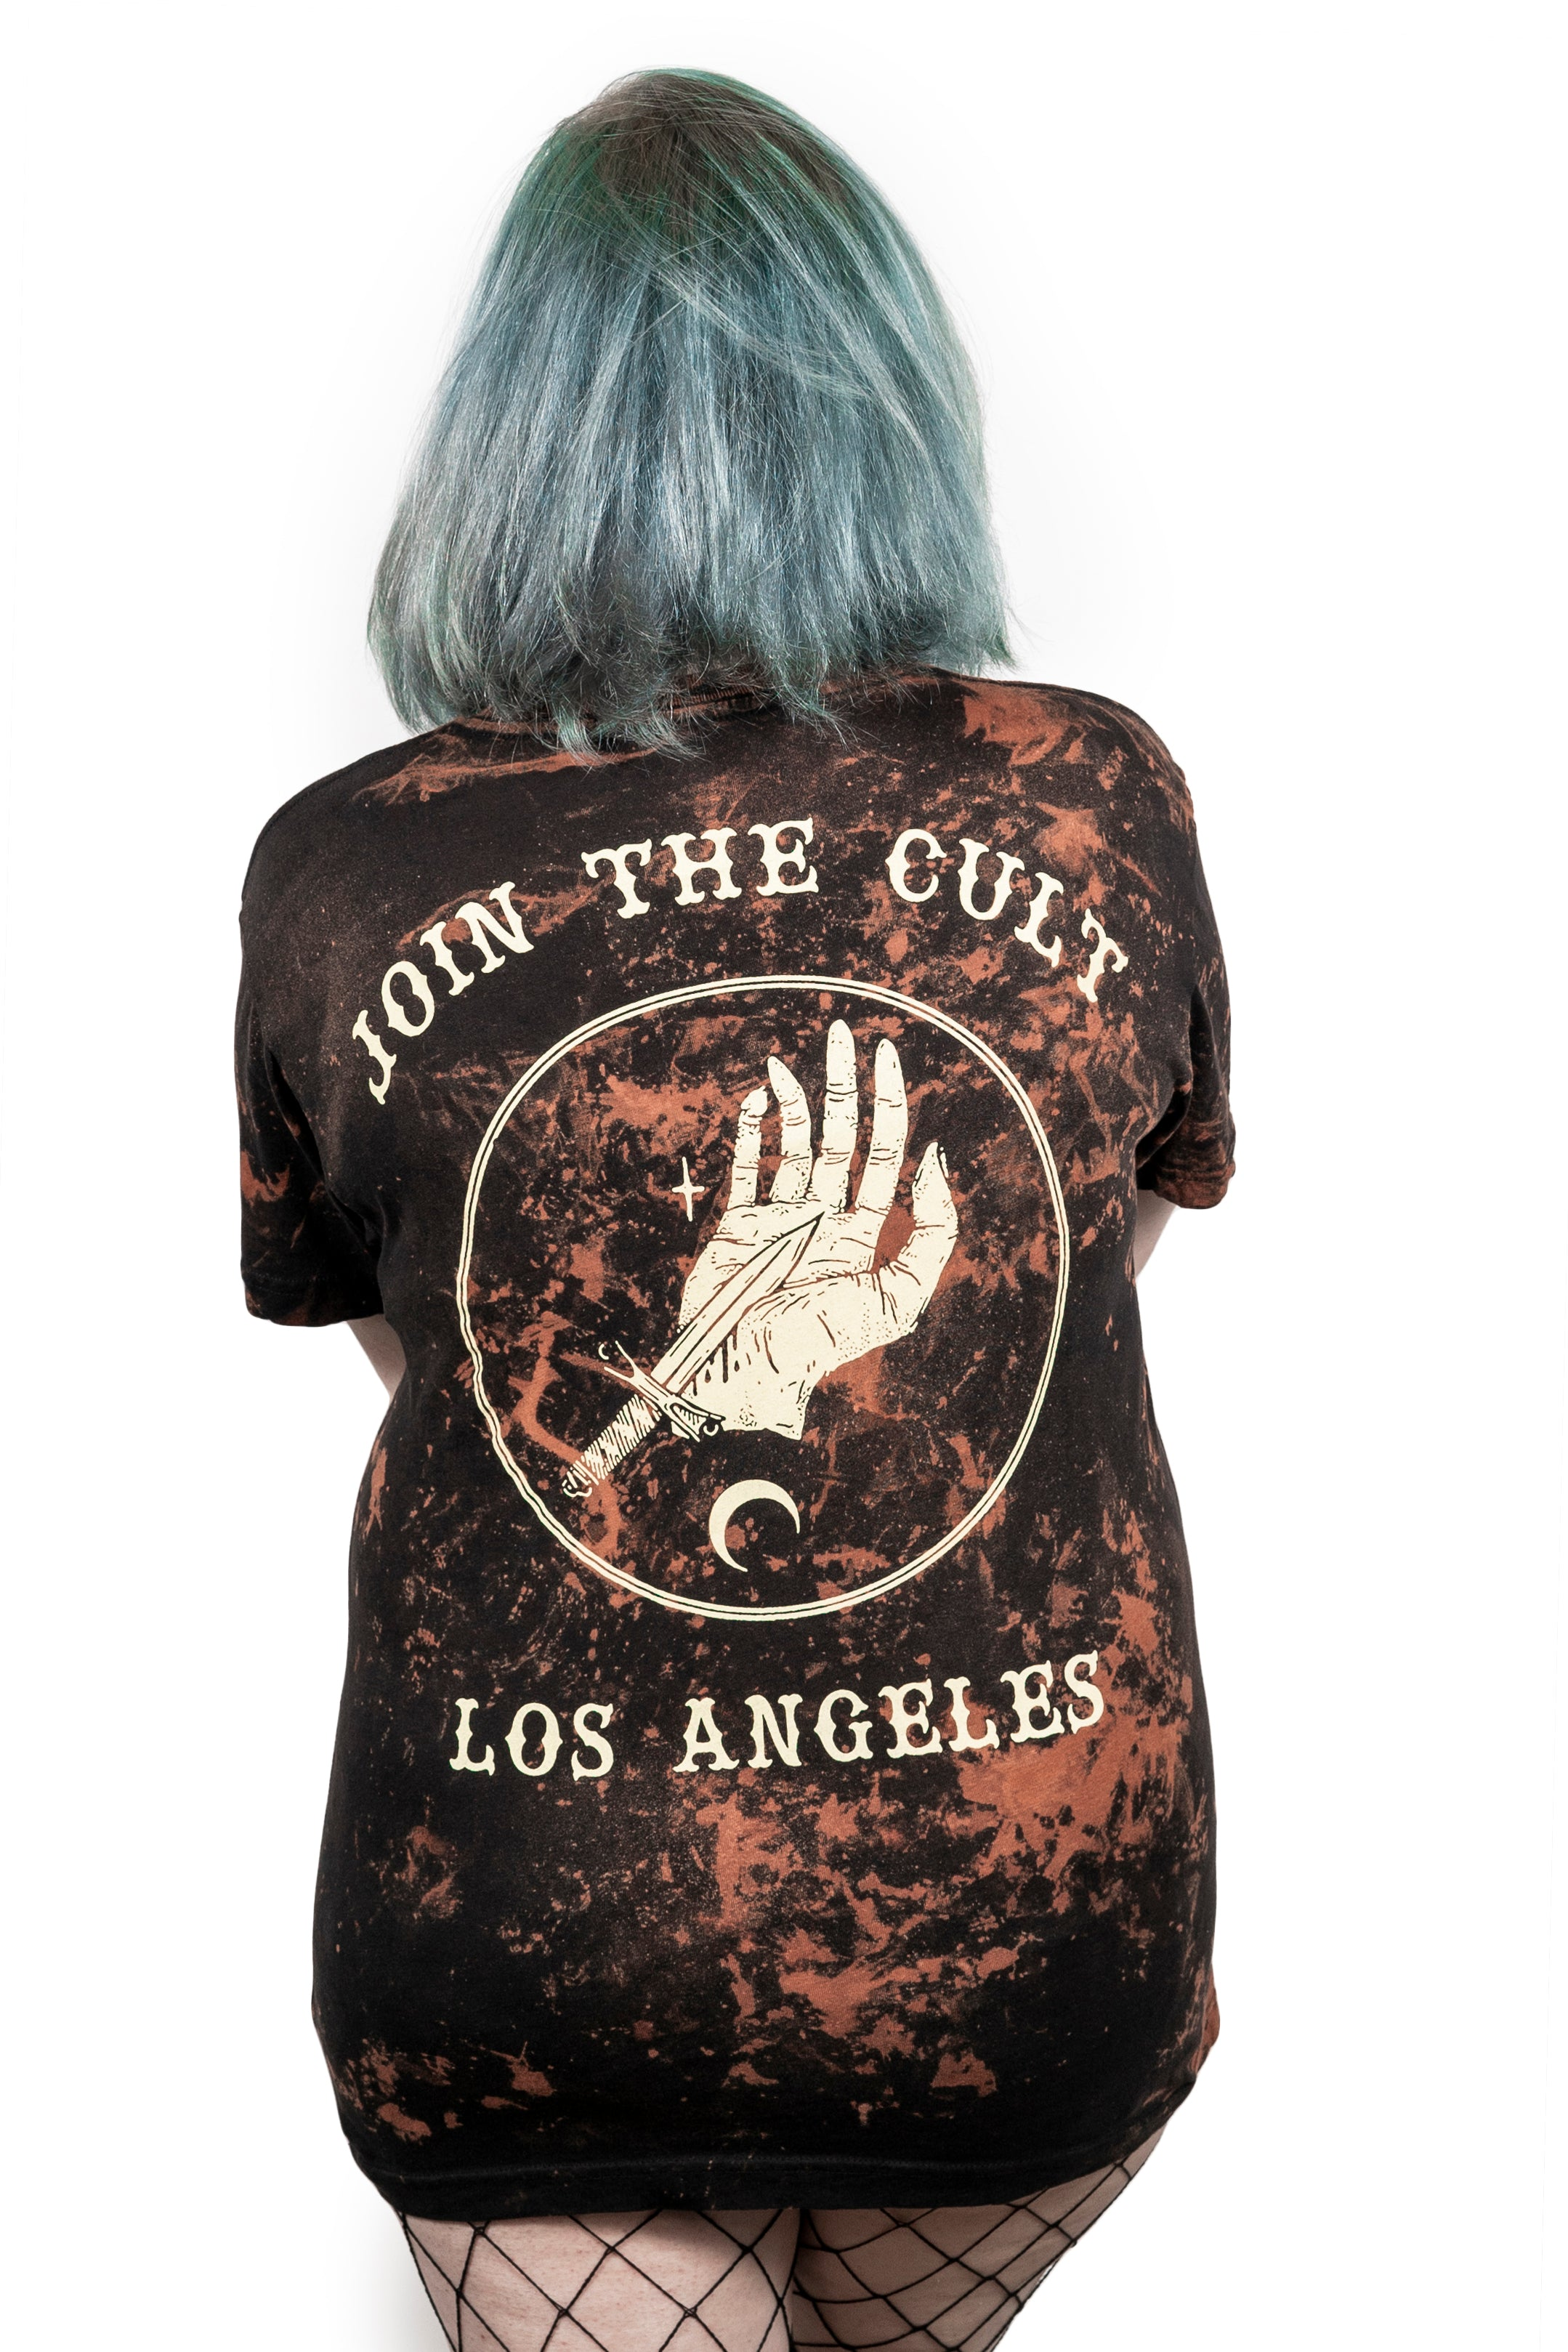 Limited Edition Join The Cult Tee